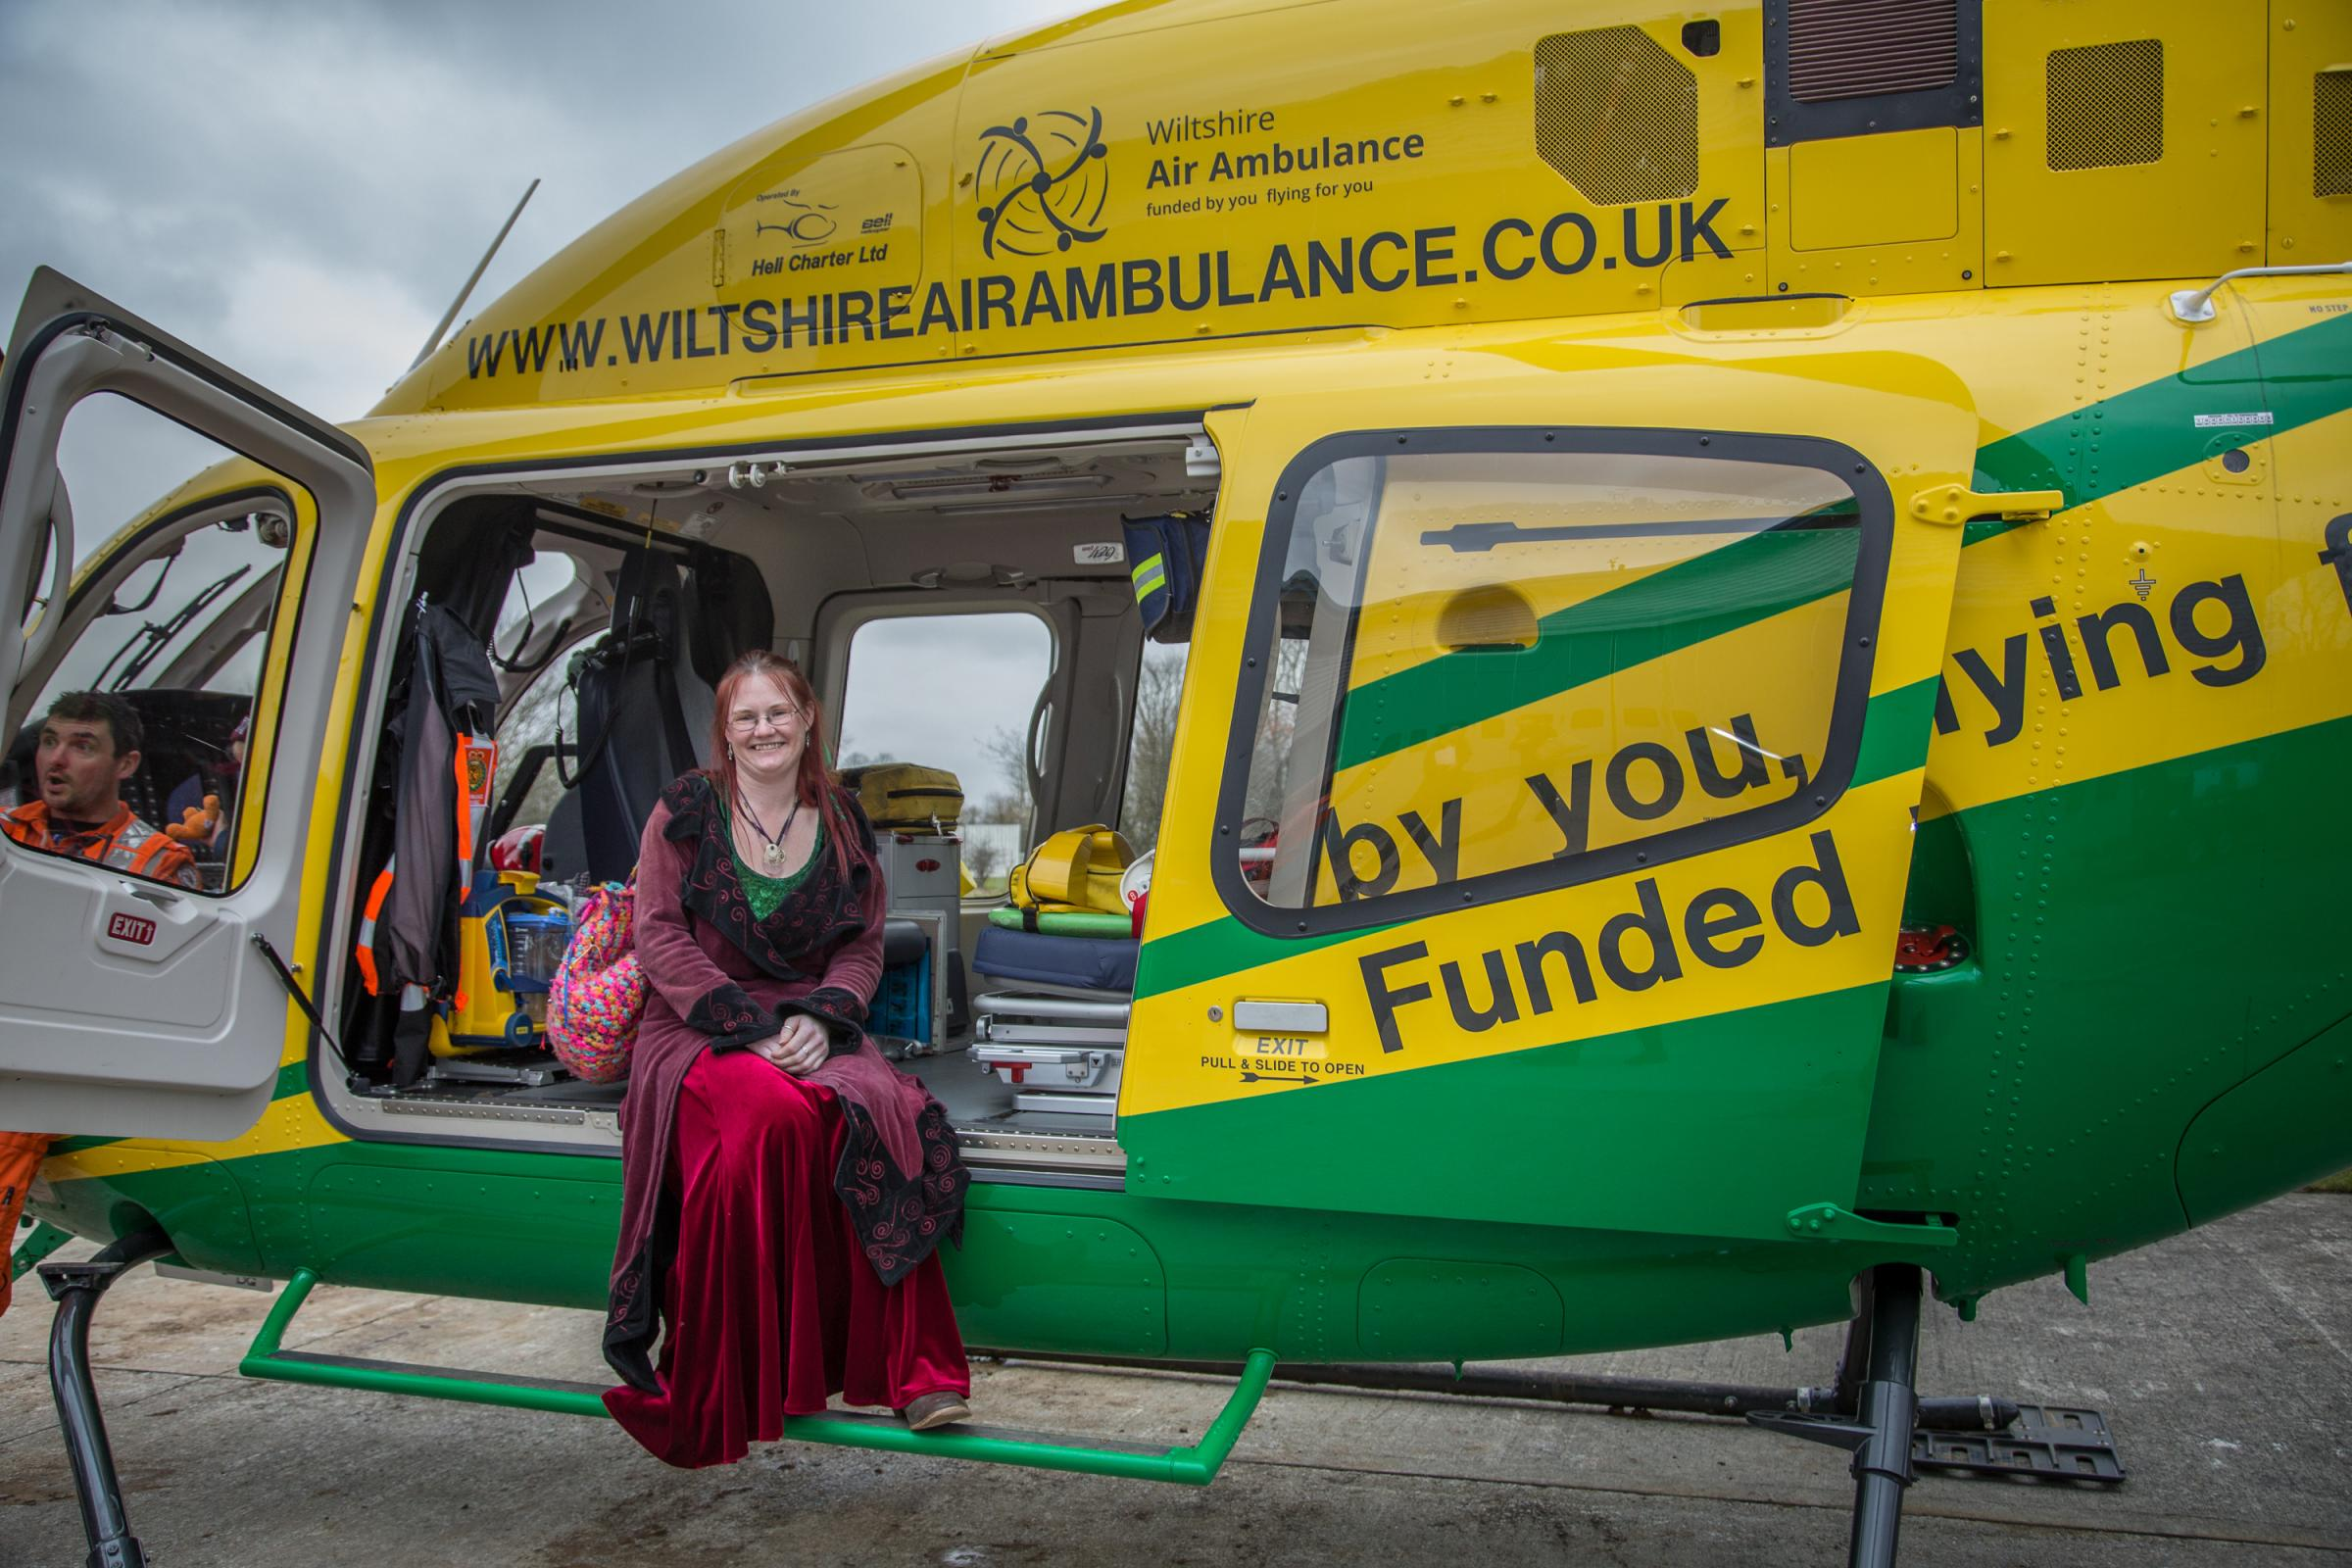 Luna Neale in the air ambulance which came into service in January 2015